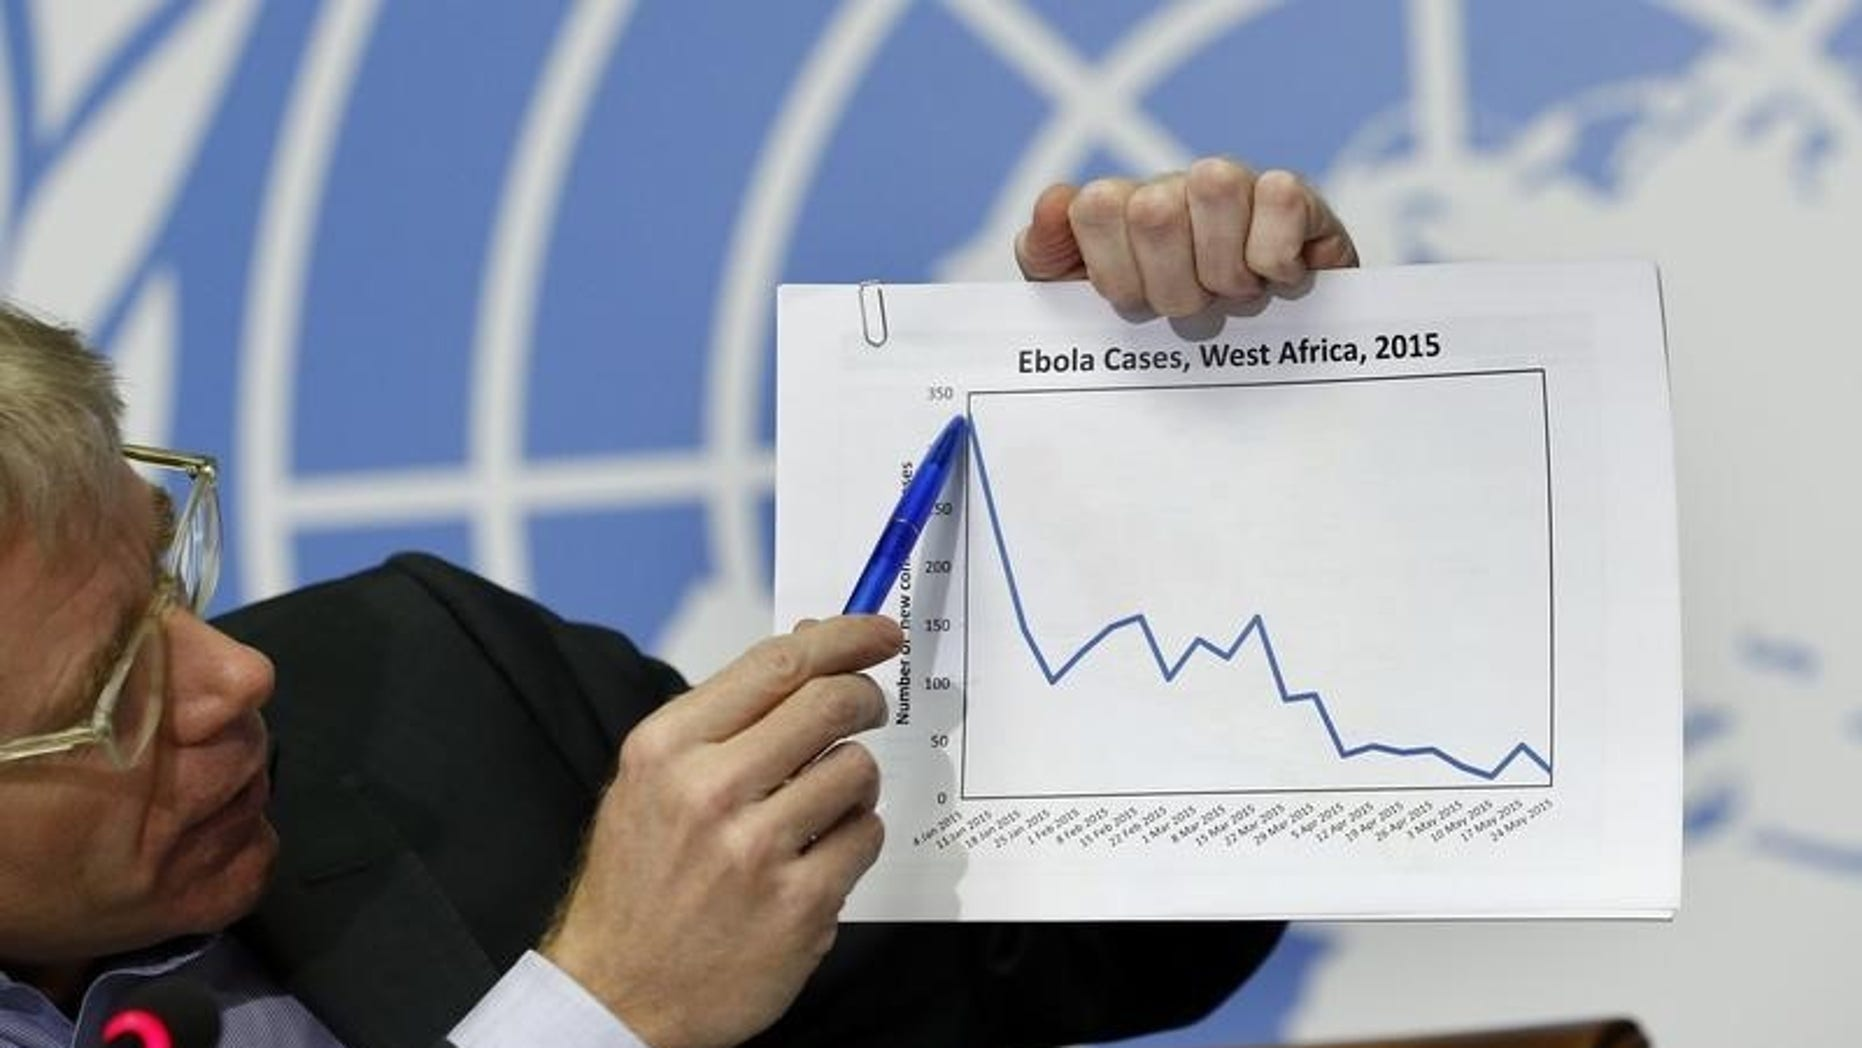 Bruce Aylward, Assistant Director-General for Emergencies at the World Health Organization shows a graph during a news conference on Ebola aside of the World Health Assembly at the United Nations in Geneva, Switzerland, May 26, 2015. REUTERS/Denis Balibouse - RTX1EKW6